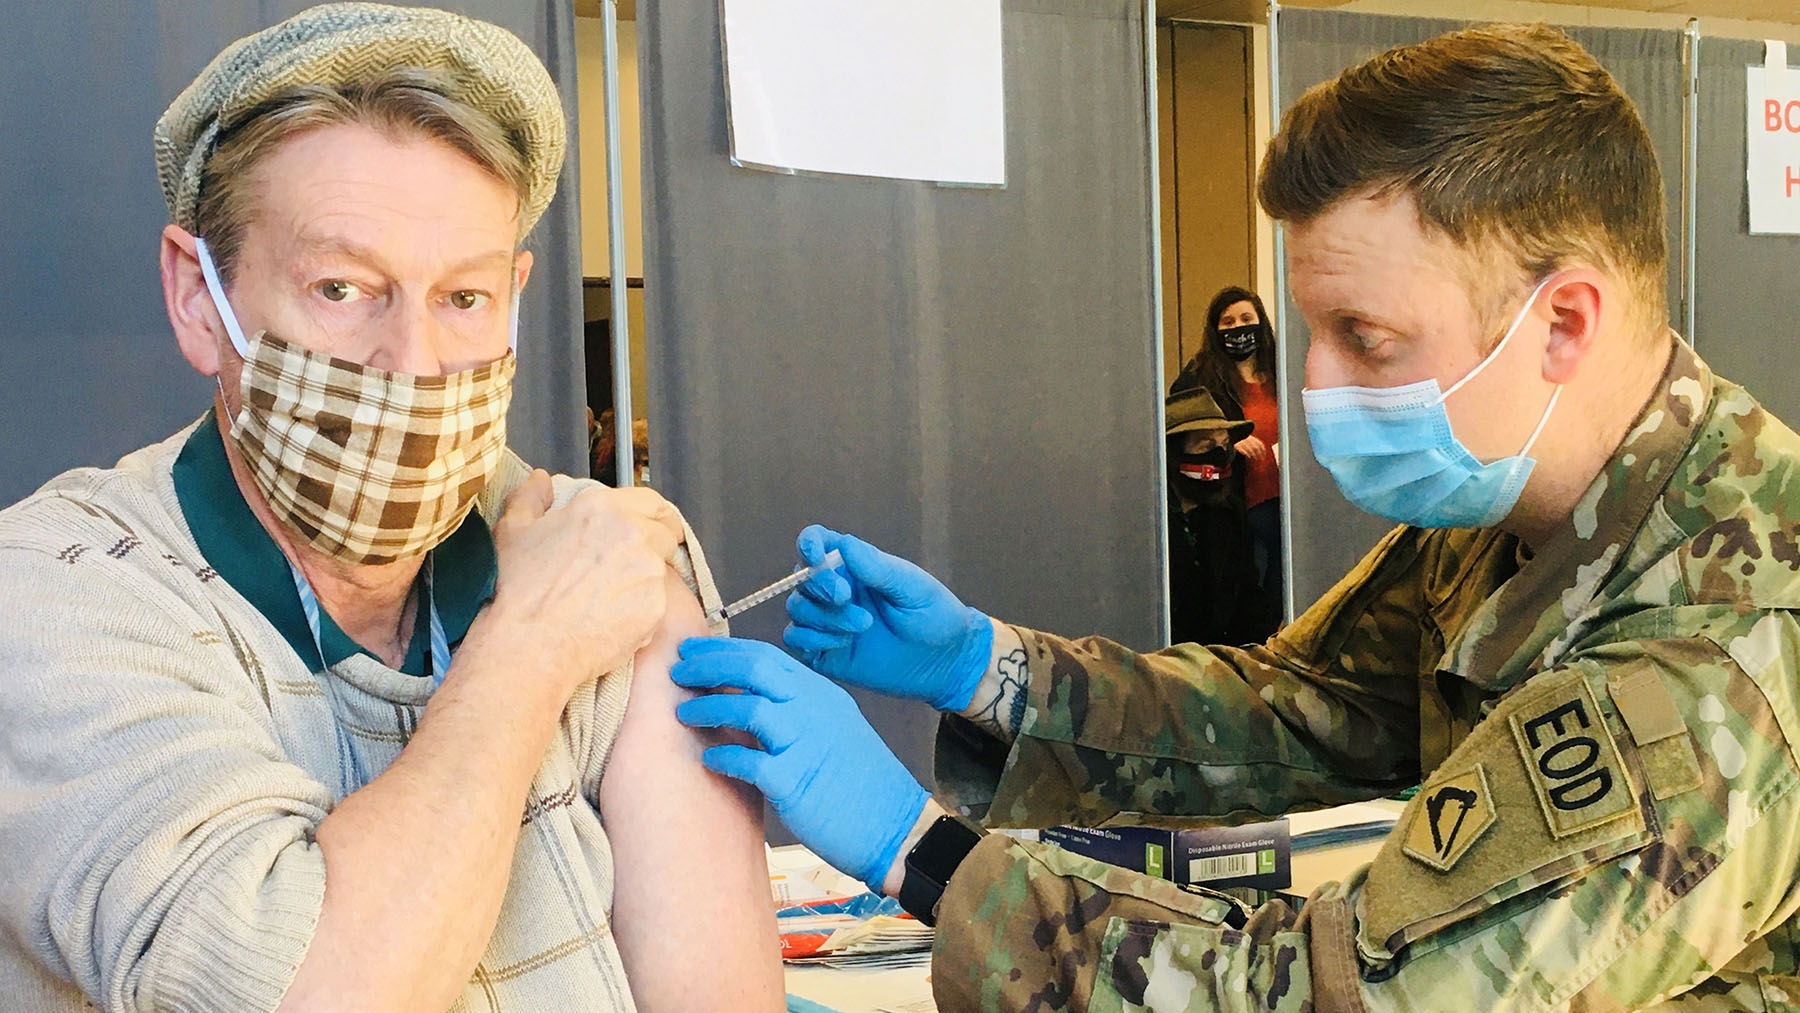 A member of the National Guard vaccinates a patient at a Brockton Neighborhood Health Center clinic. (Photo courtesy of Brockton Neighborhood Health Center)